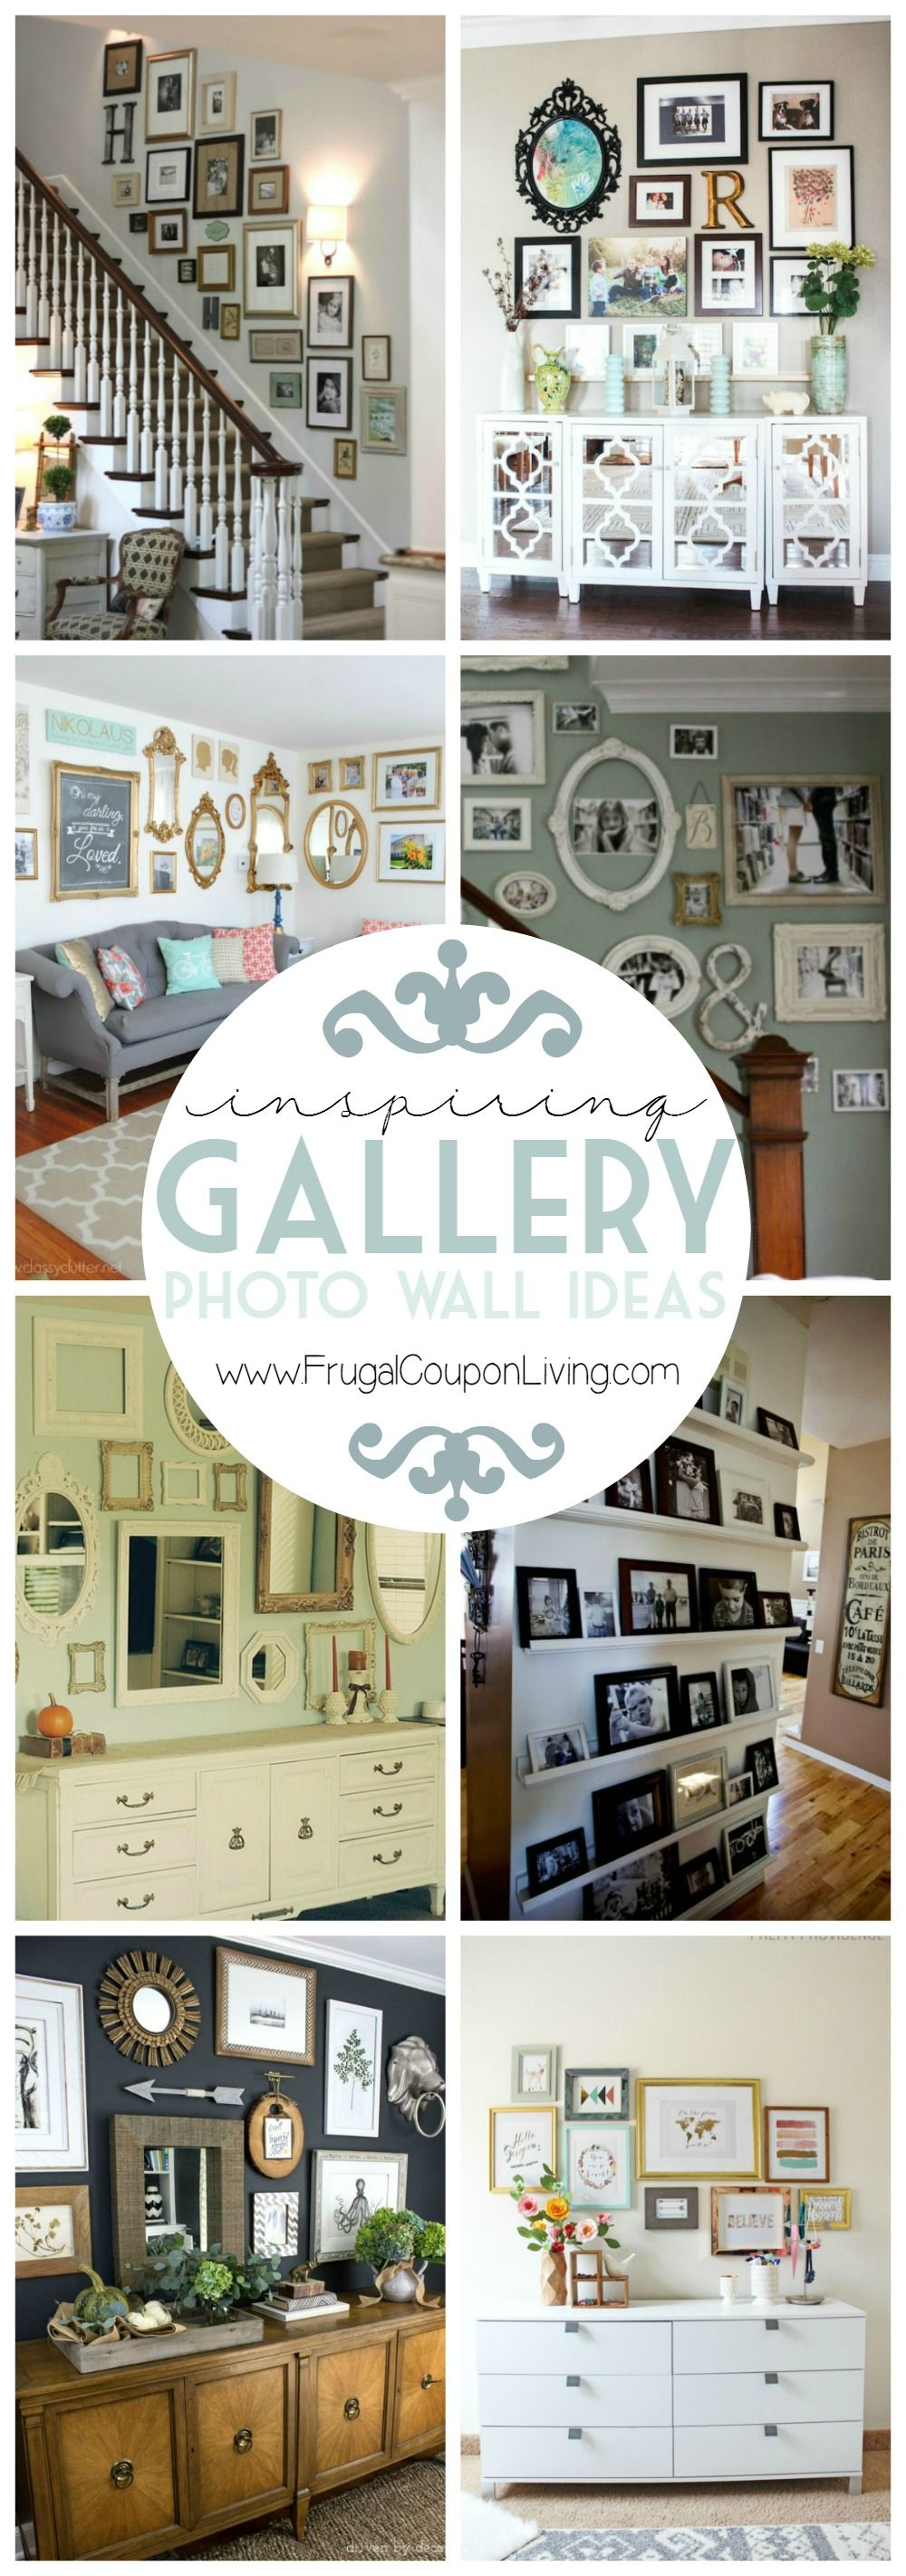 Gallery Wall Ideas and Inspiration for PIcture Frame Displays.  Family picture frame ideas and ornament for displaying your home portraits. #gallery #gallerywall #photographs #homedecor #home #photography #photowall